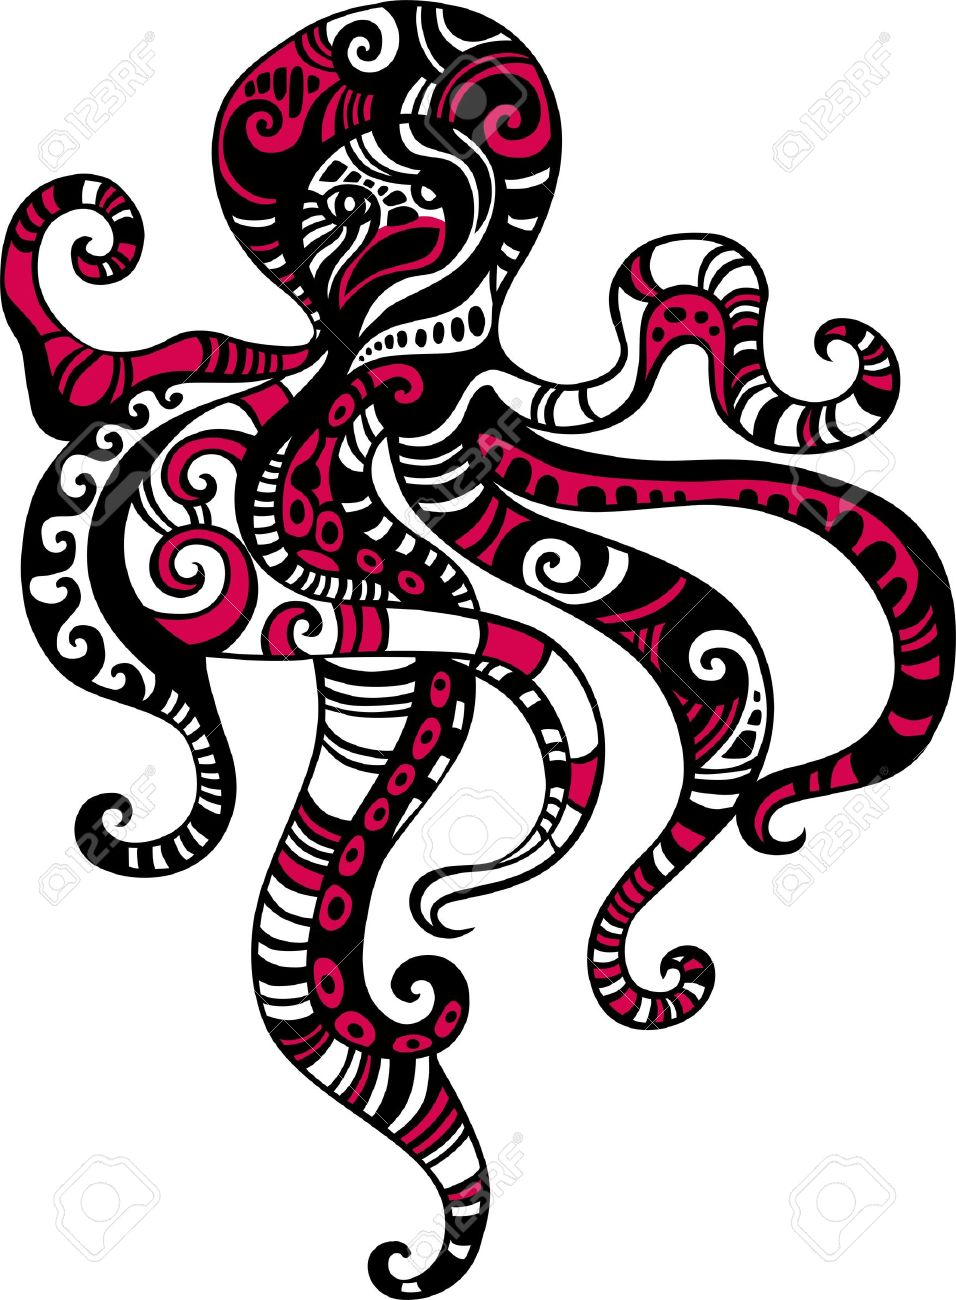 956x1300 Octopus Stock Vector Illustration And Royalty Free Octopus Clipart